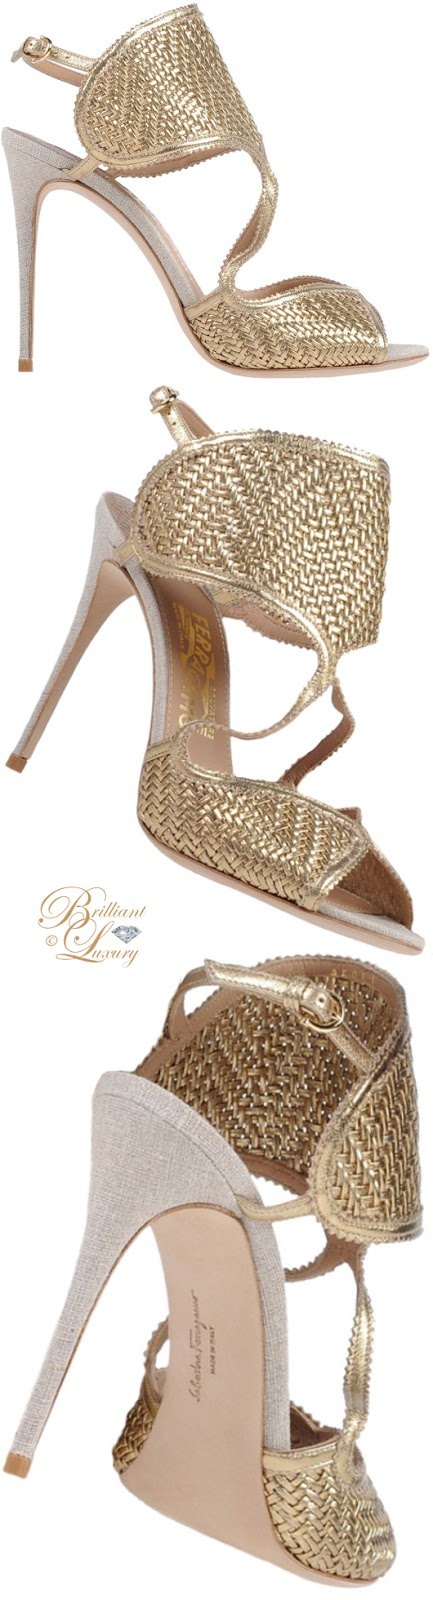 Brilliant Luxury ♦  Salvatore Ferragamo gold sandals